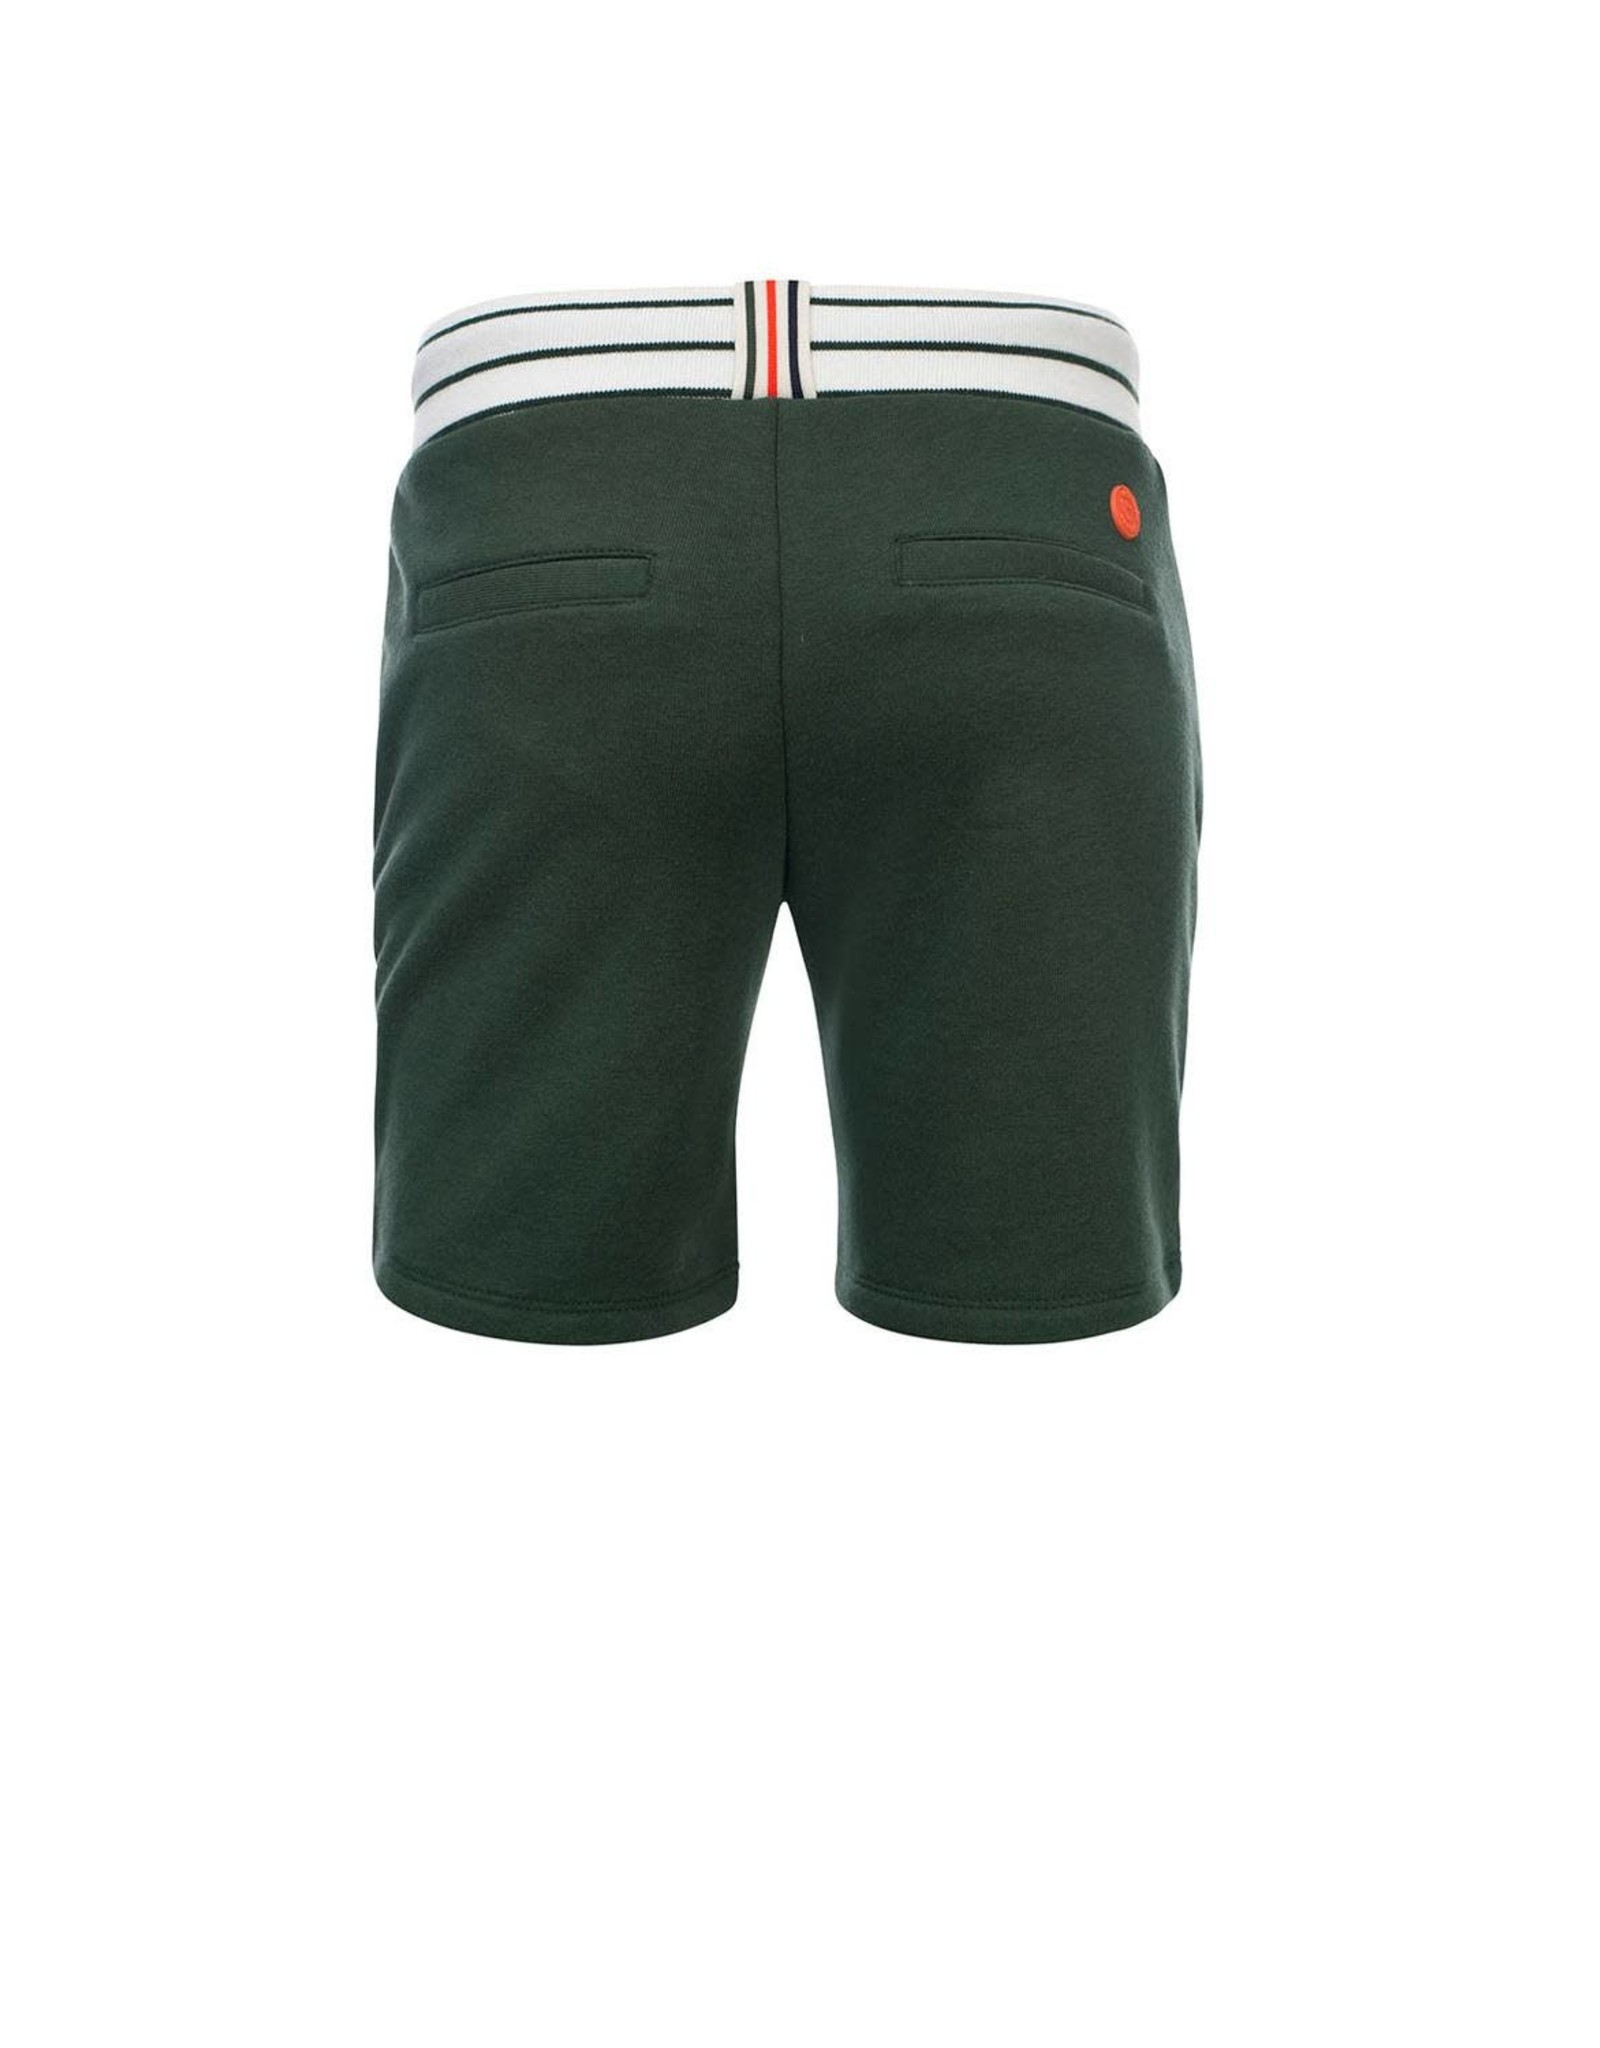 Common Heroes BOWY sporty sweat Shorts army